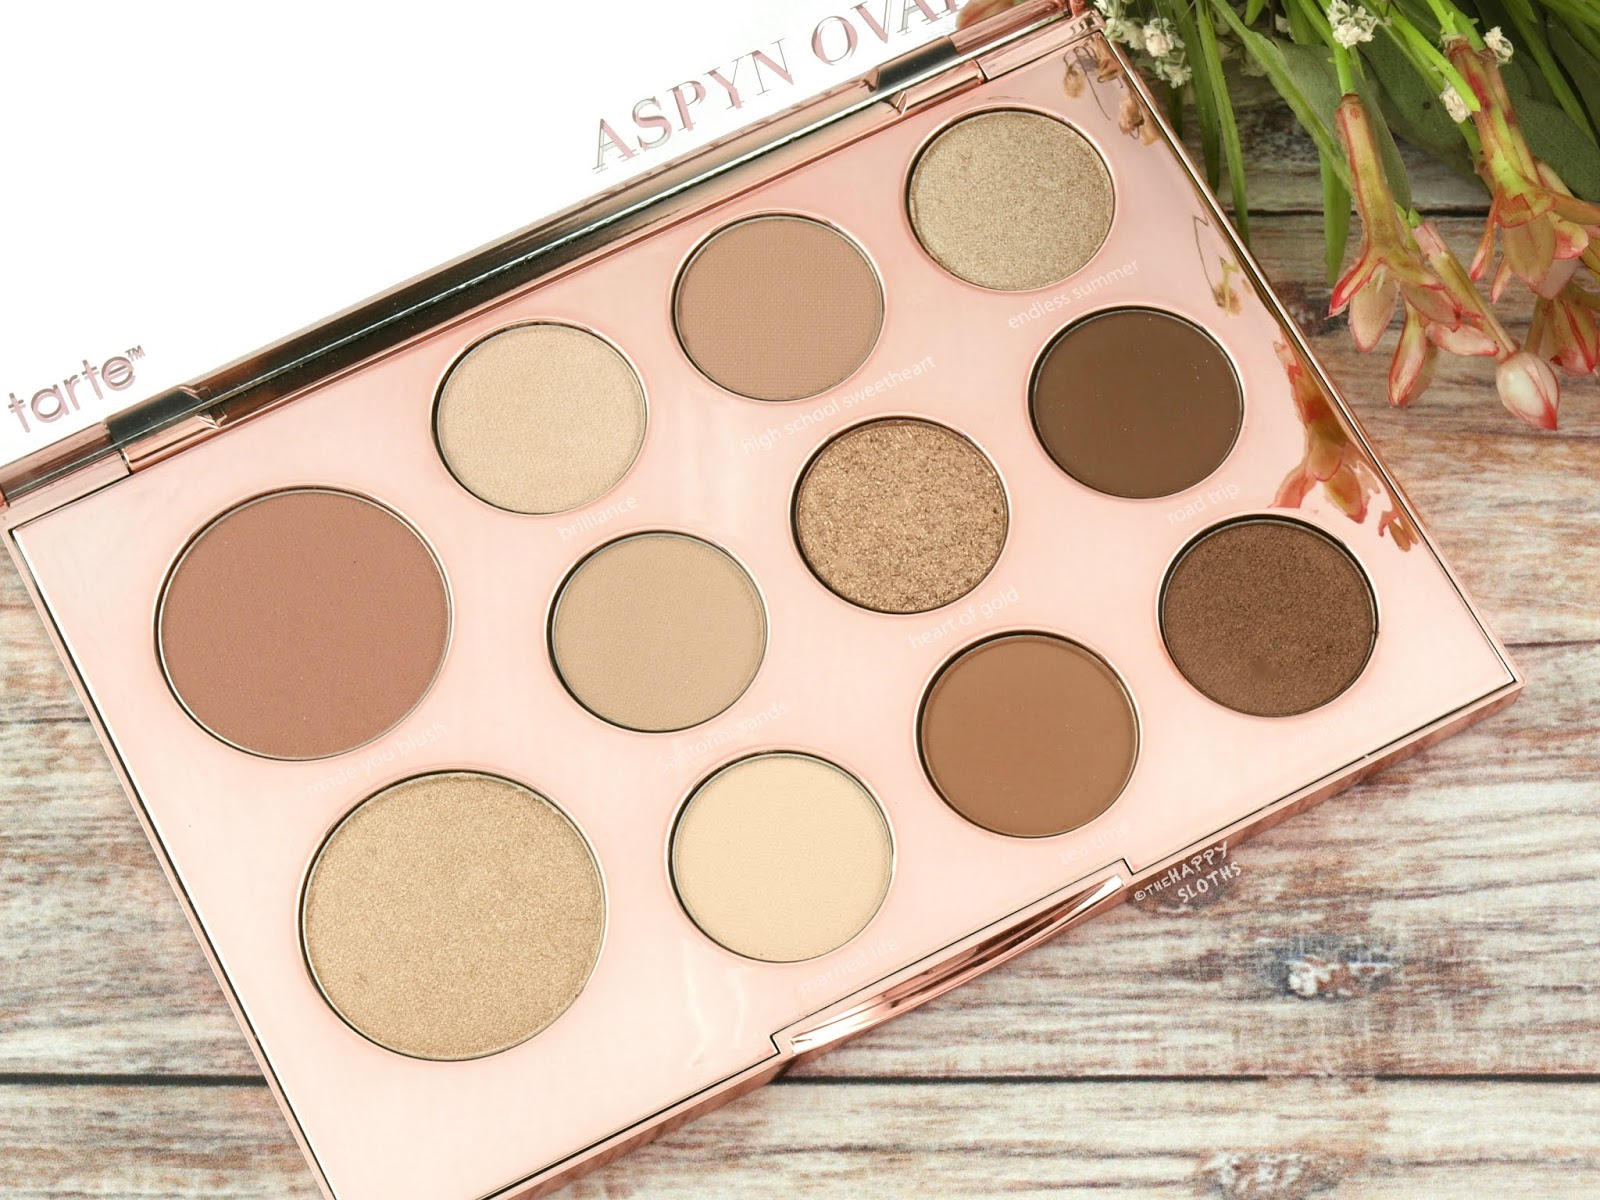 Tarte | Aspyn Ovard Eye & Cheek Palette: Review and Swatches